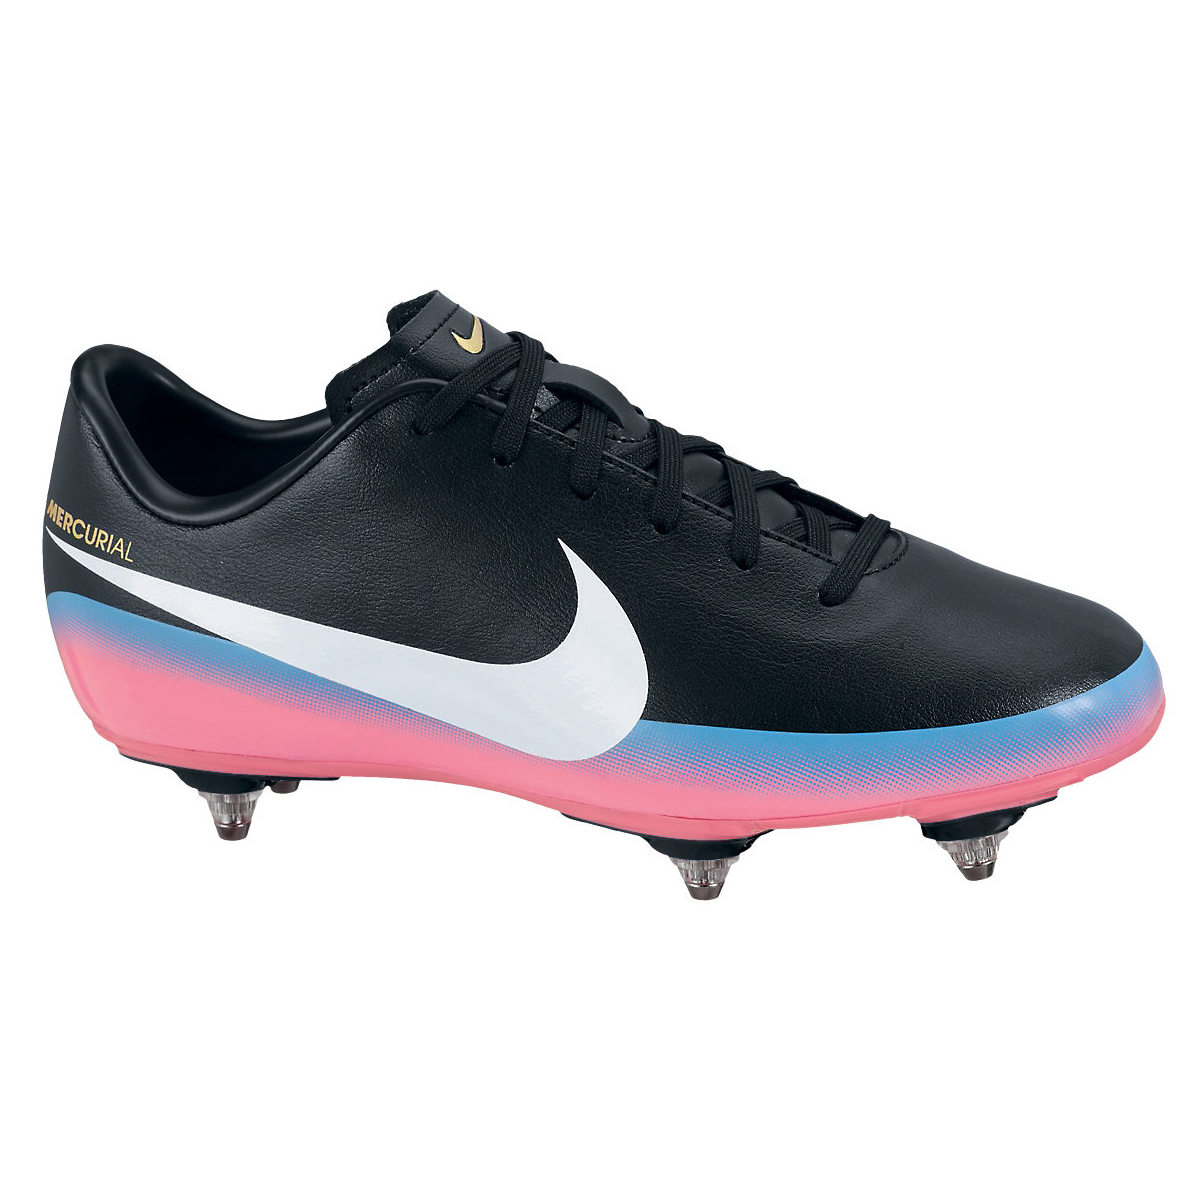 Nike Mercurial Victory III CR7 Soft Ground Football Boots - Black/White/Blue Glow/Pink Flash - Kids